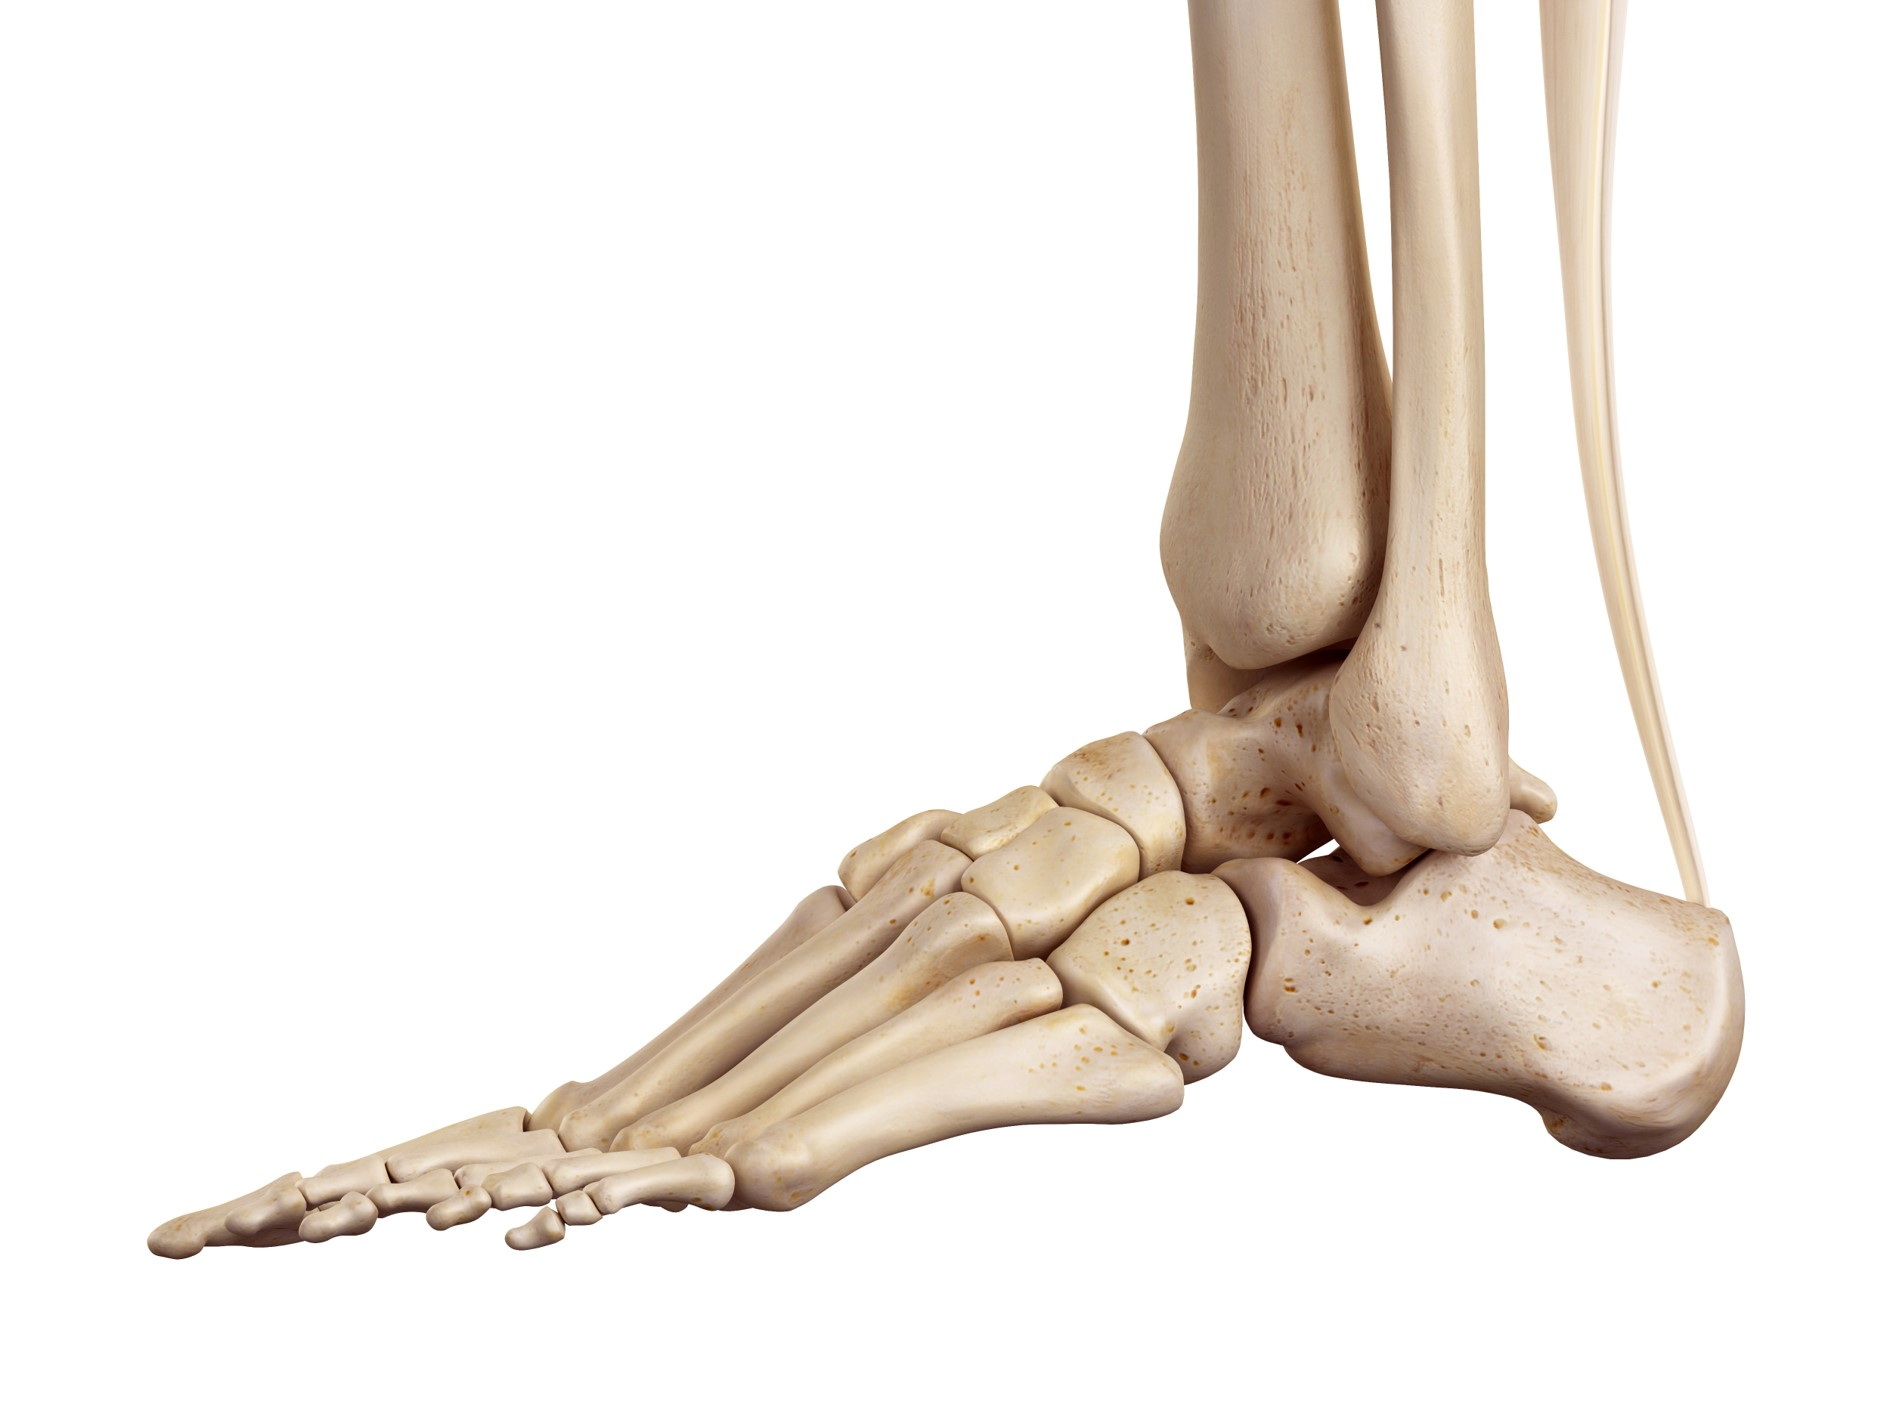 Lateral aspect of left foot